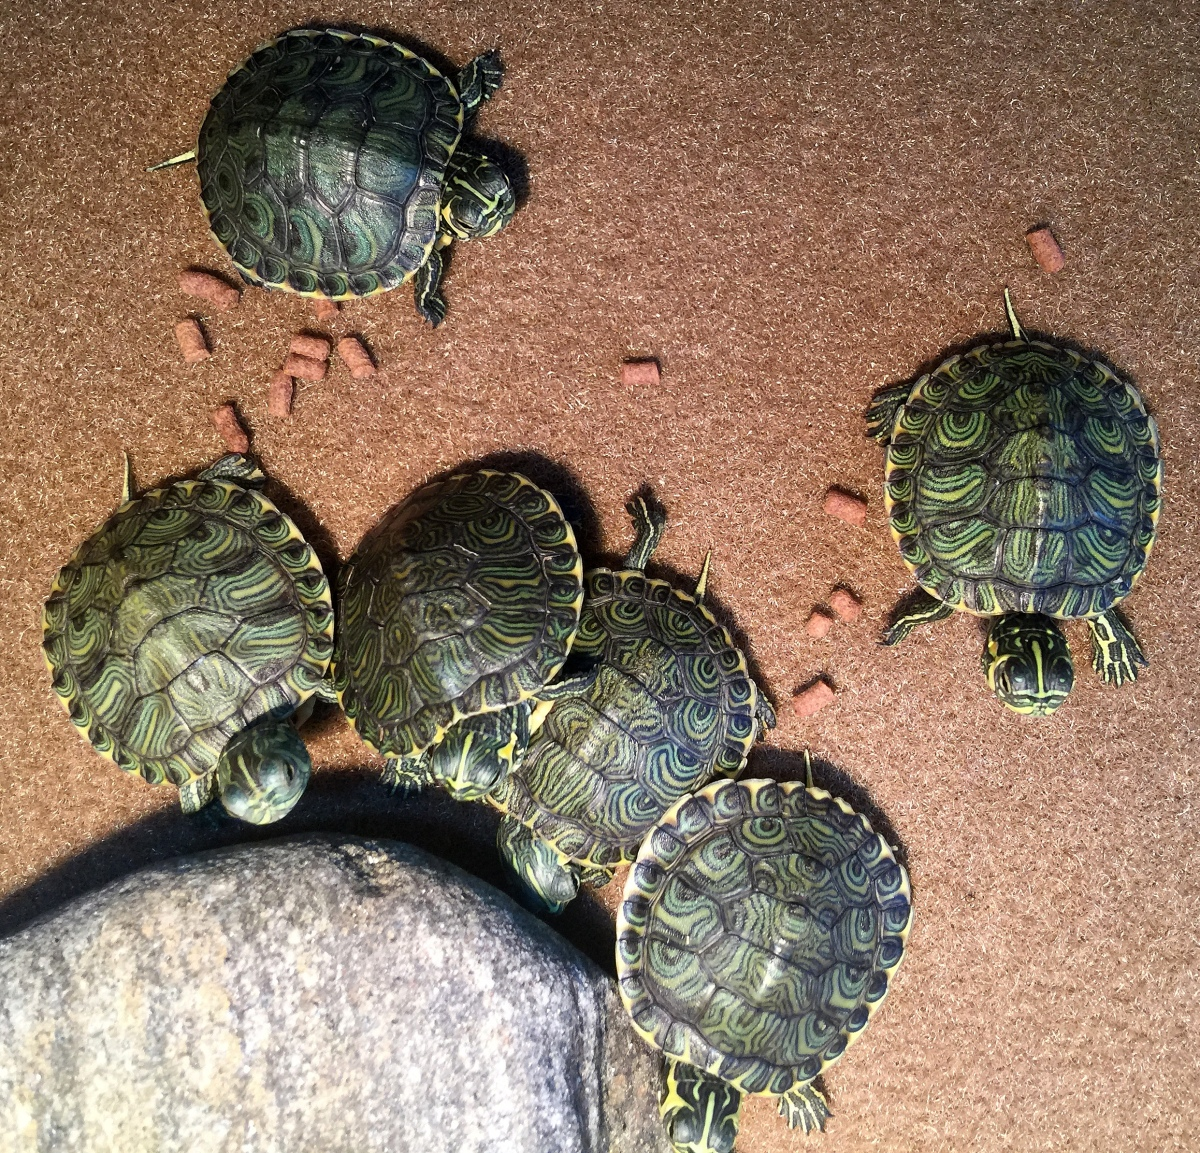 Aquatic Habitat ~ The Turtles–Today Marks a Year–04/23